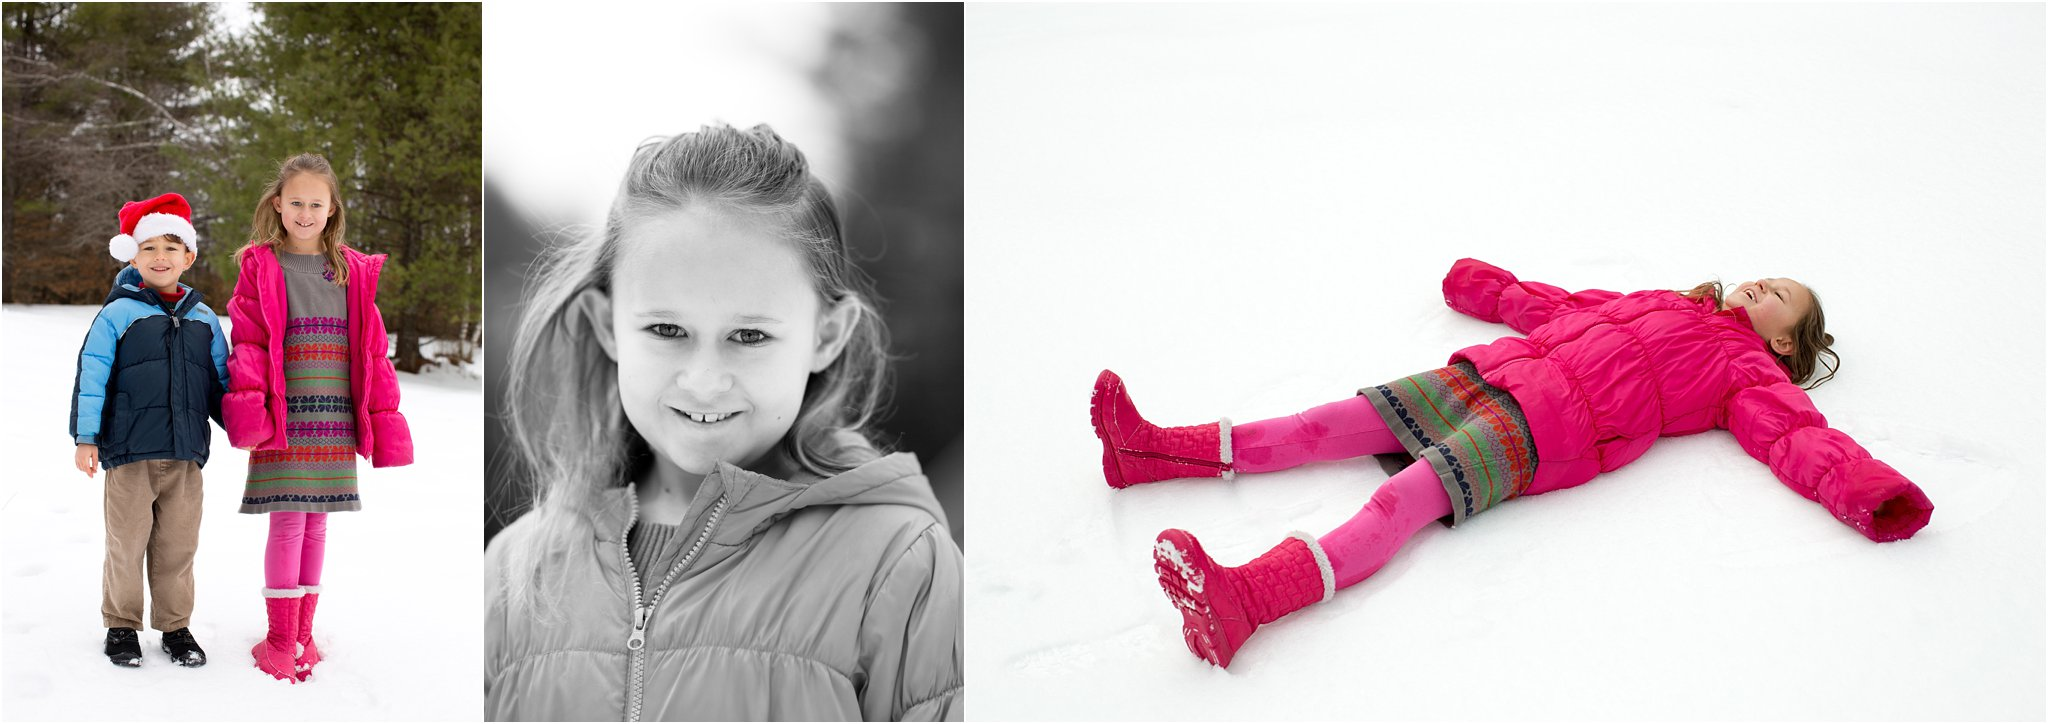 Outdoor photos of children in winter